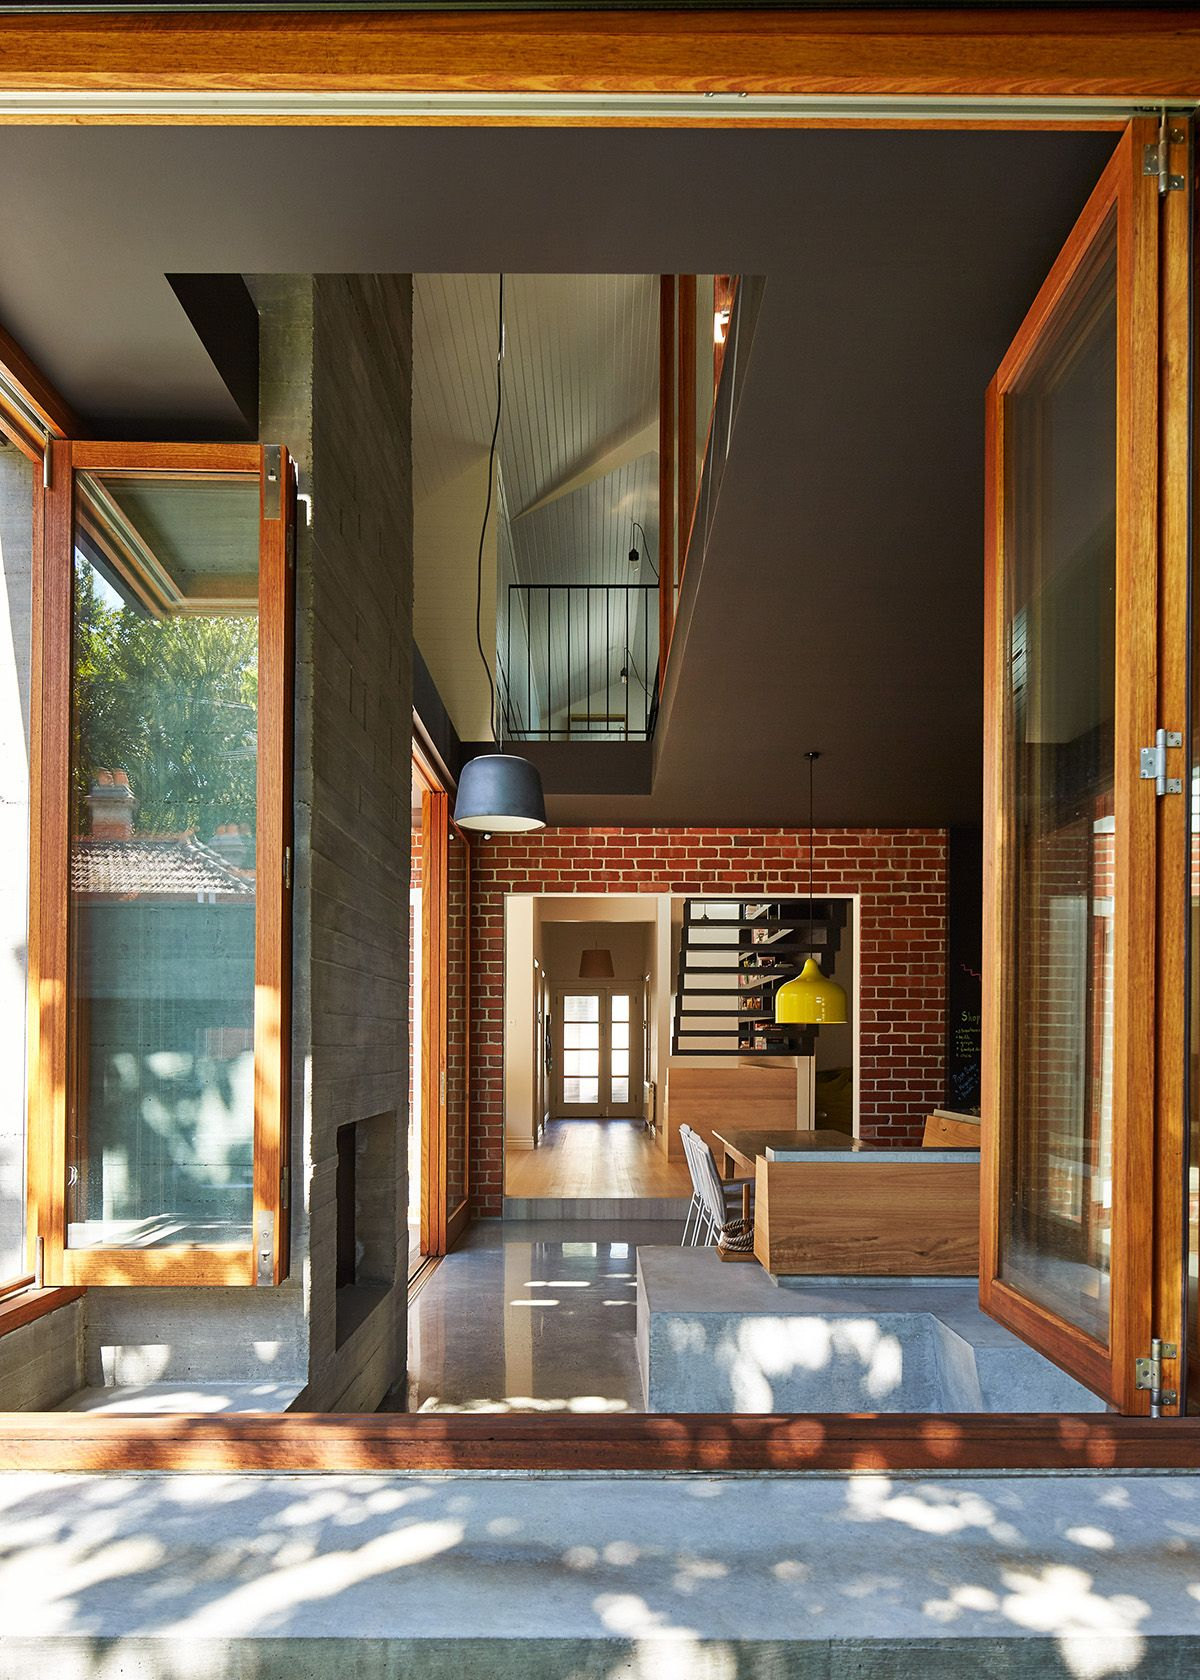 interior design of bungalow houses%0A A large part of the inspiration for the extension of this St Kilda  Californian Bungalow comes    Space ArchitectureArchitecture Interior DesignContemporary